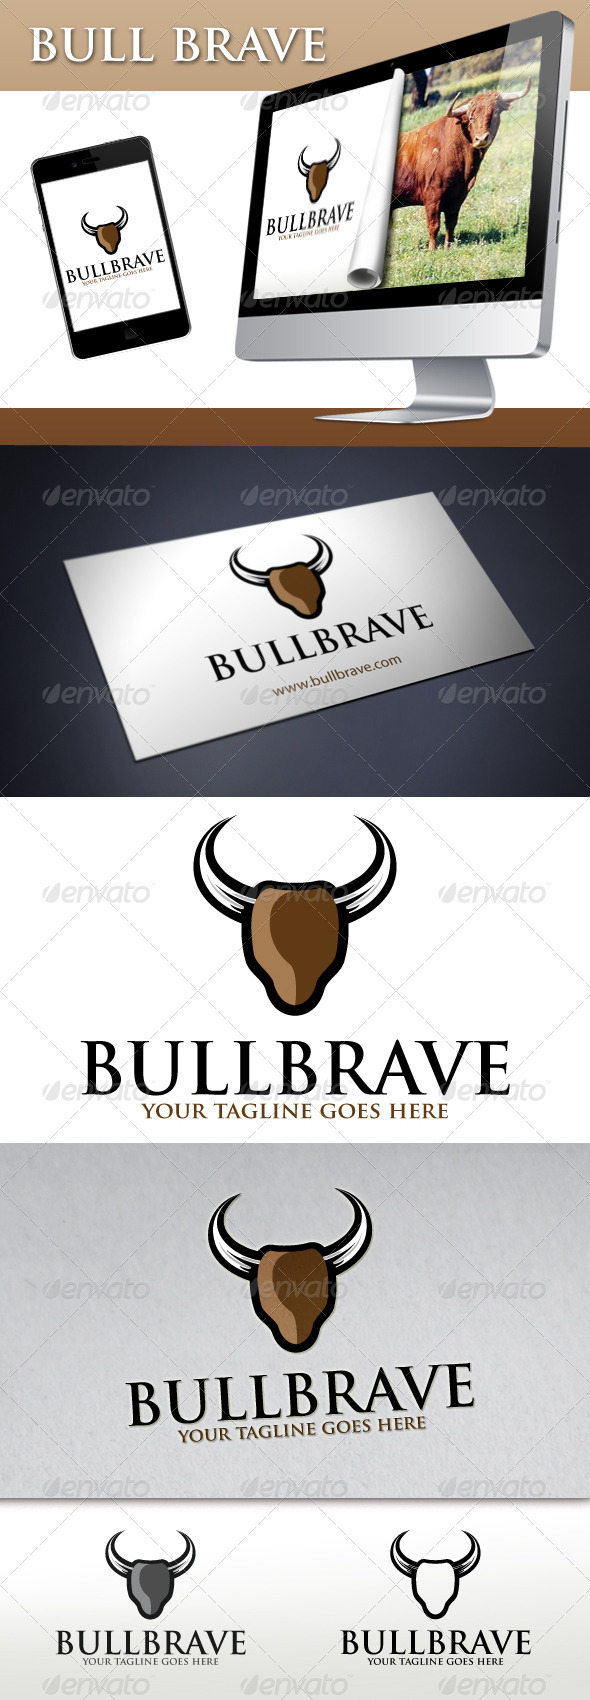 Bull Brave Logo - Animals Logo Templates